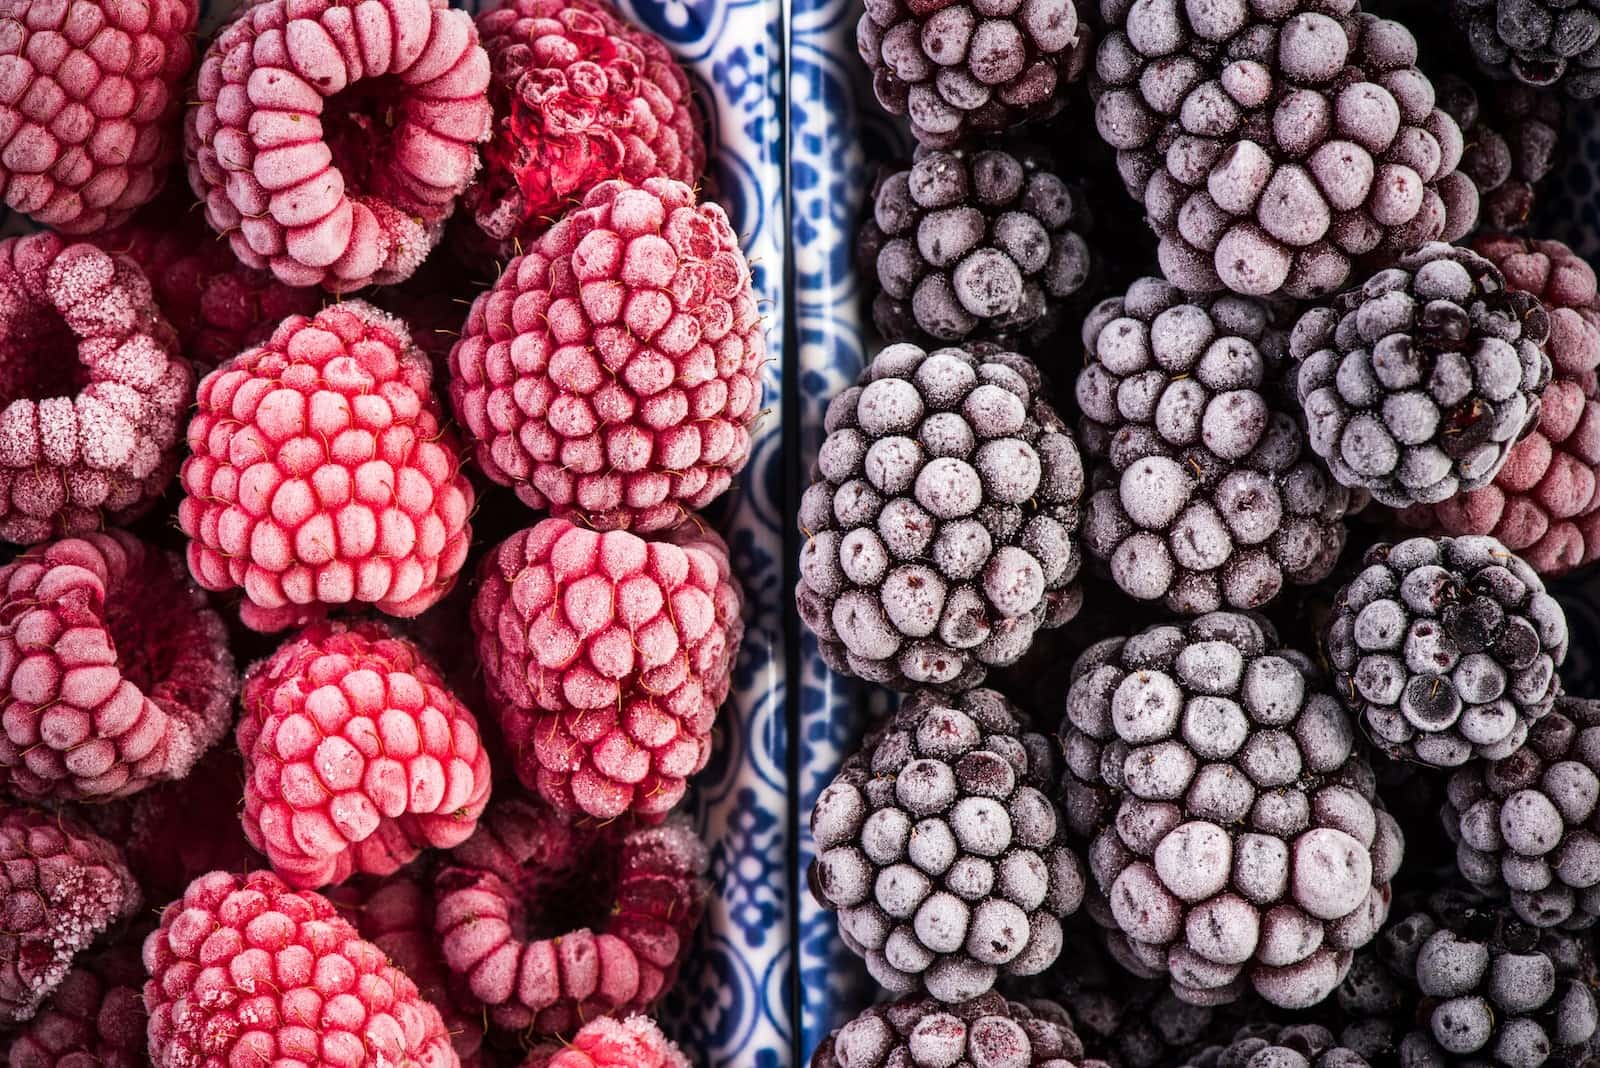 frozen fruit and vegetable more nutritious